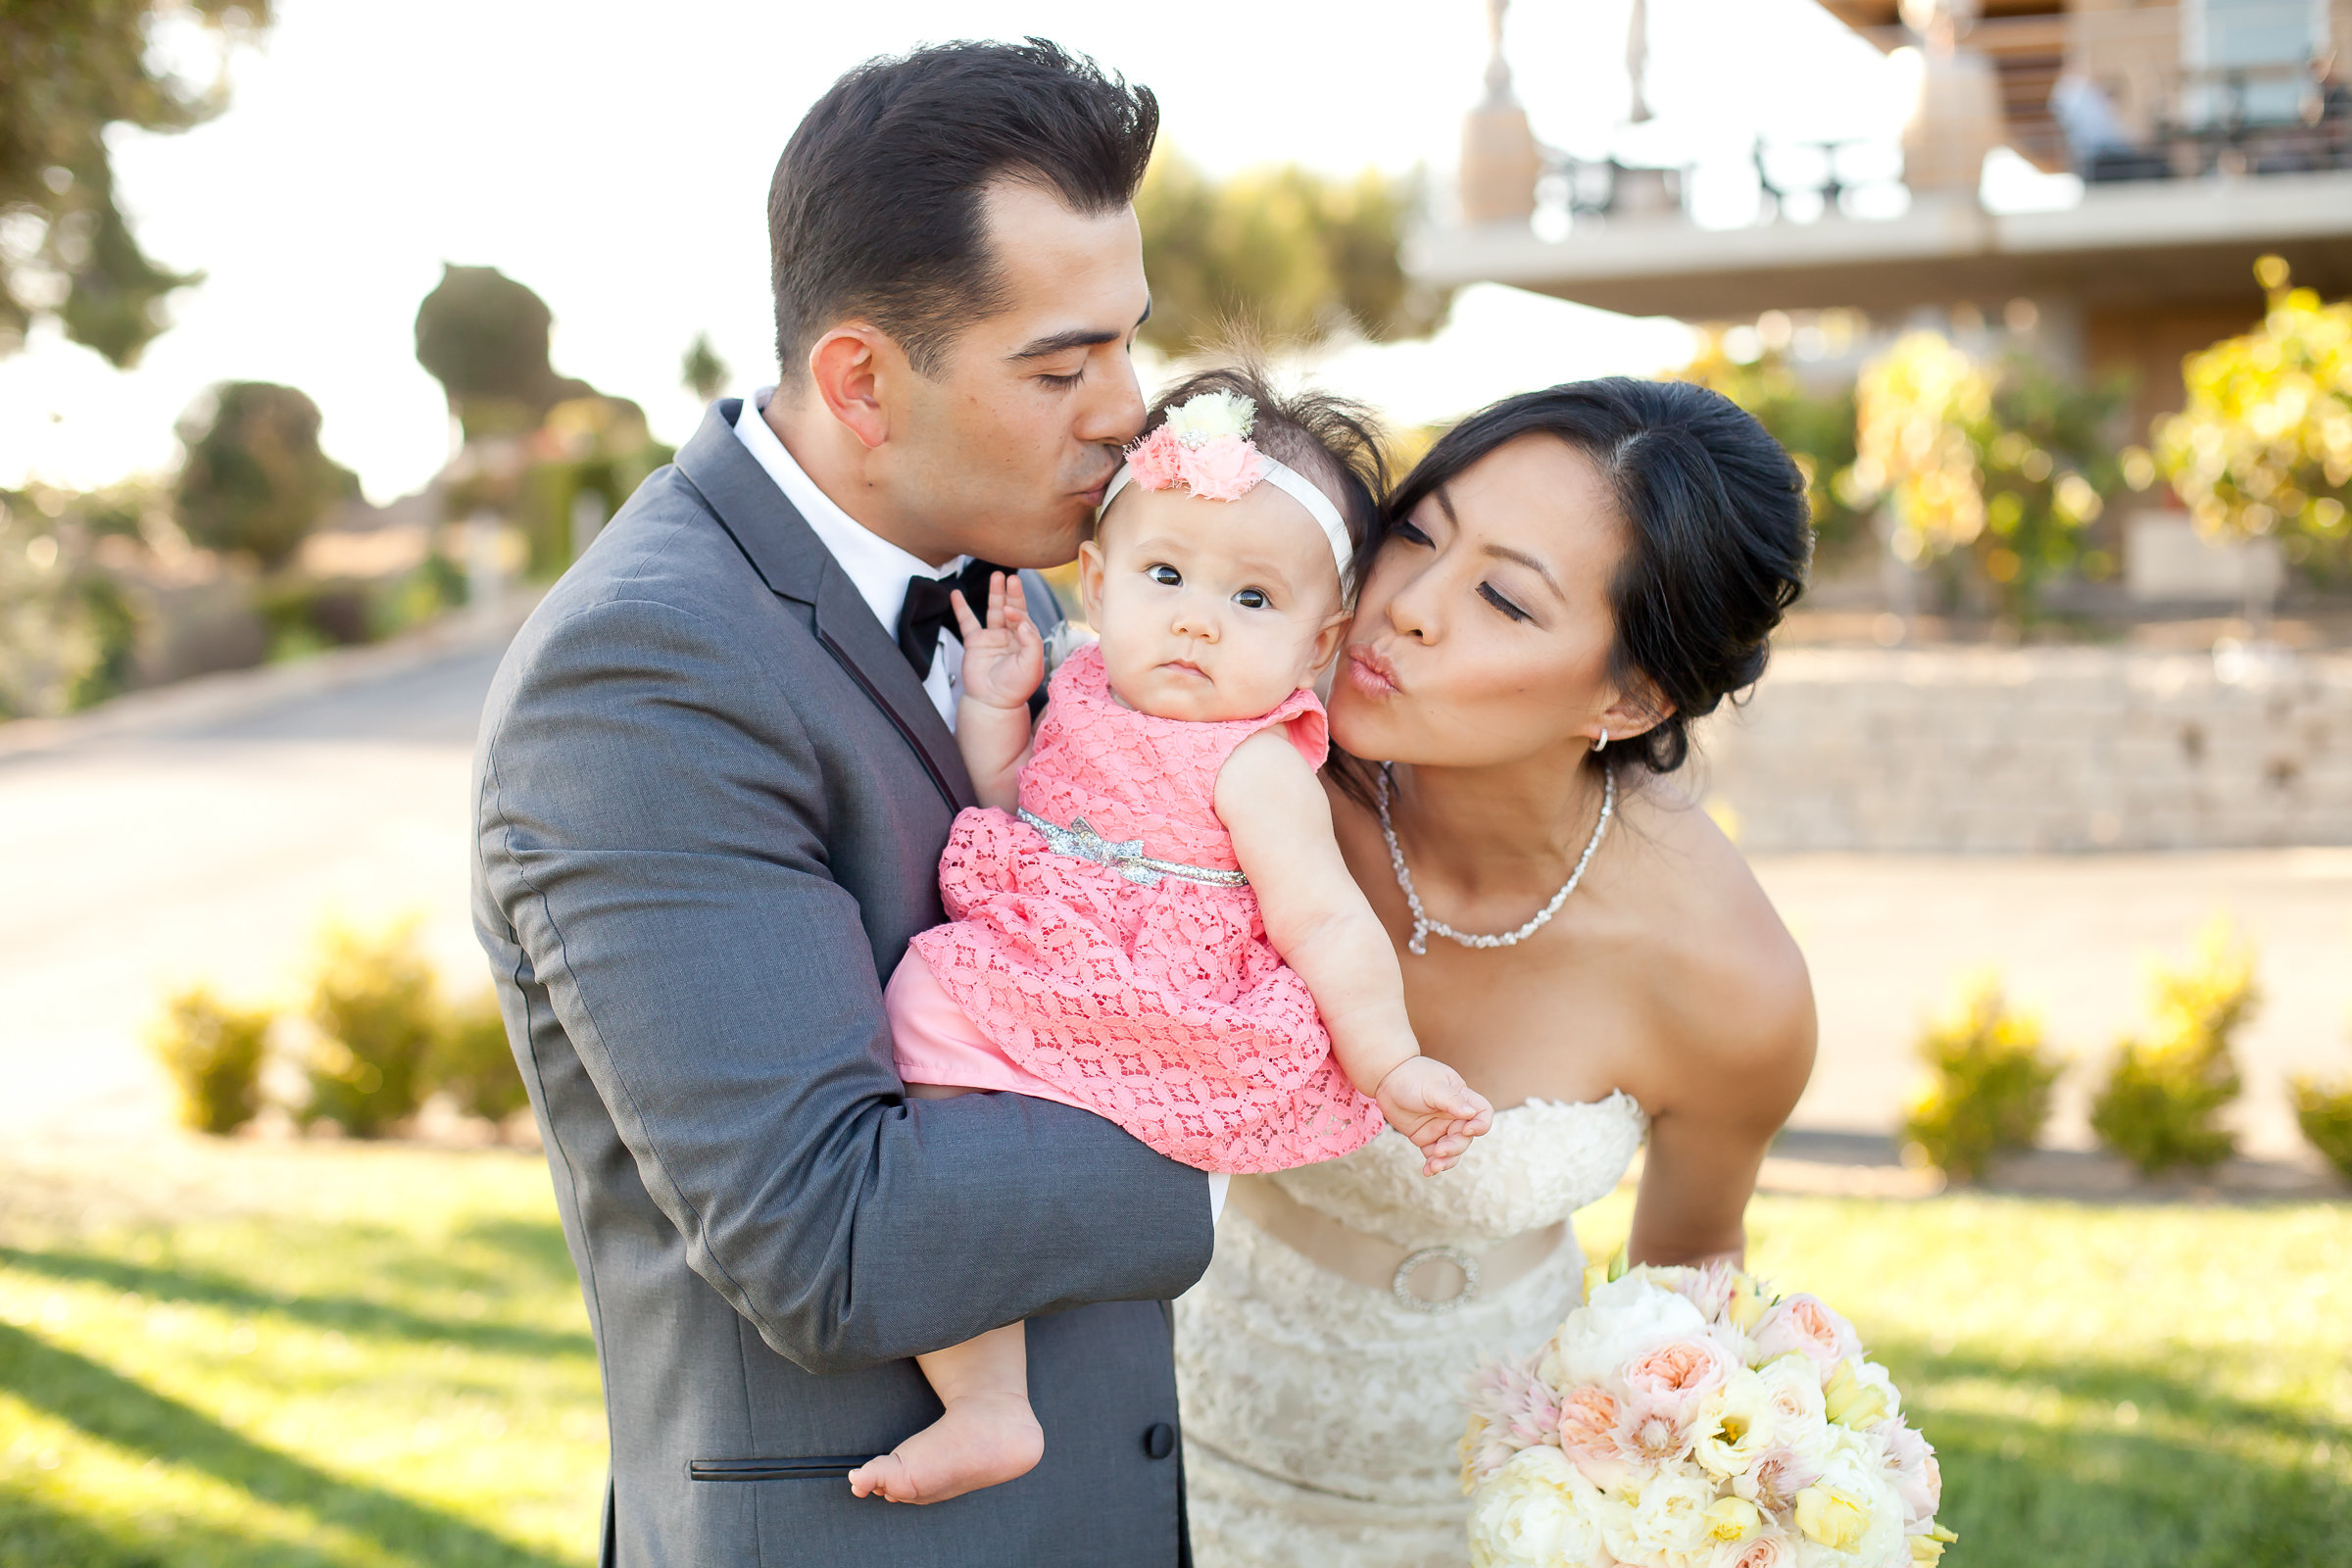 Bride, Groom and Baby Makes 3 | Michelle Garibay Events